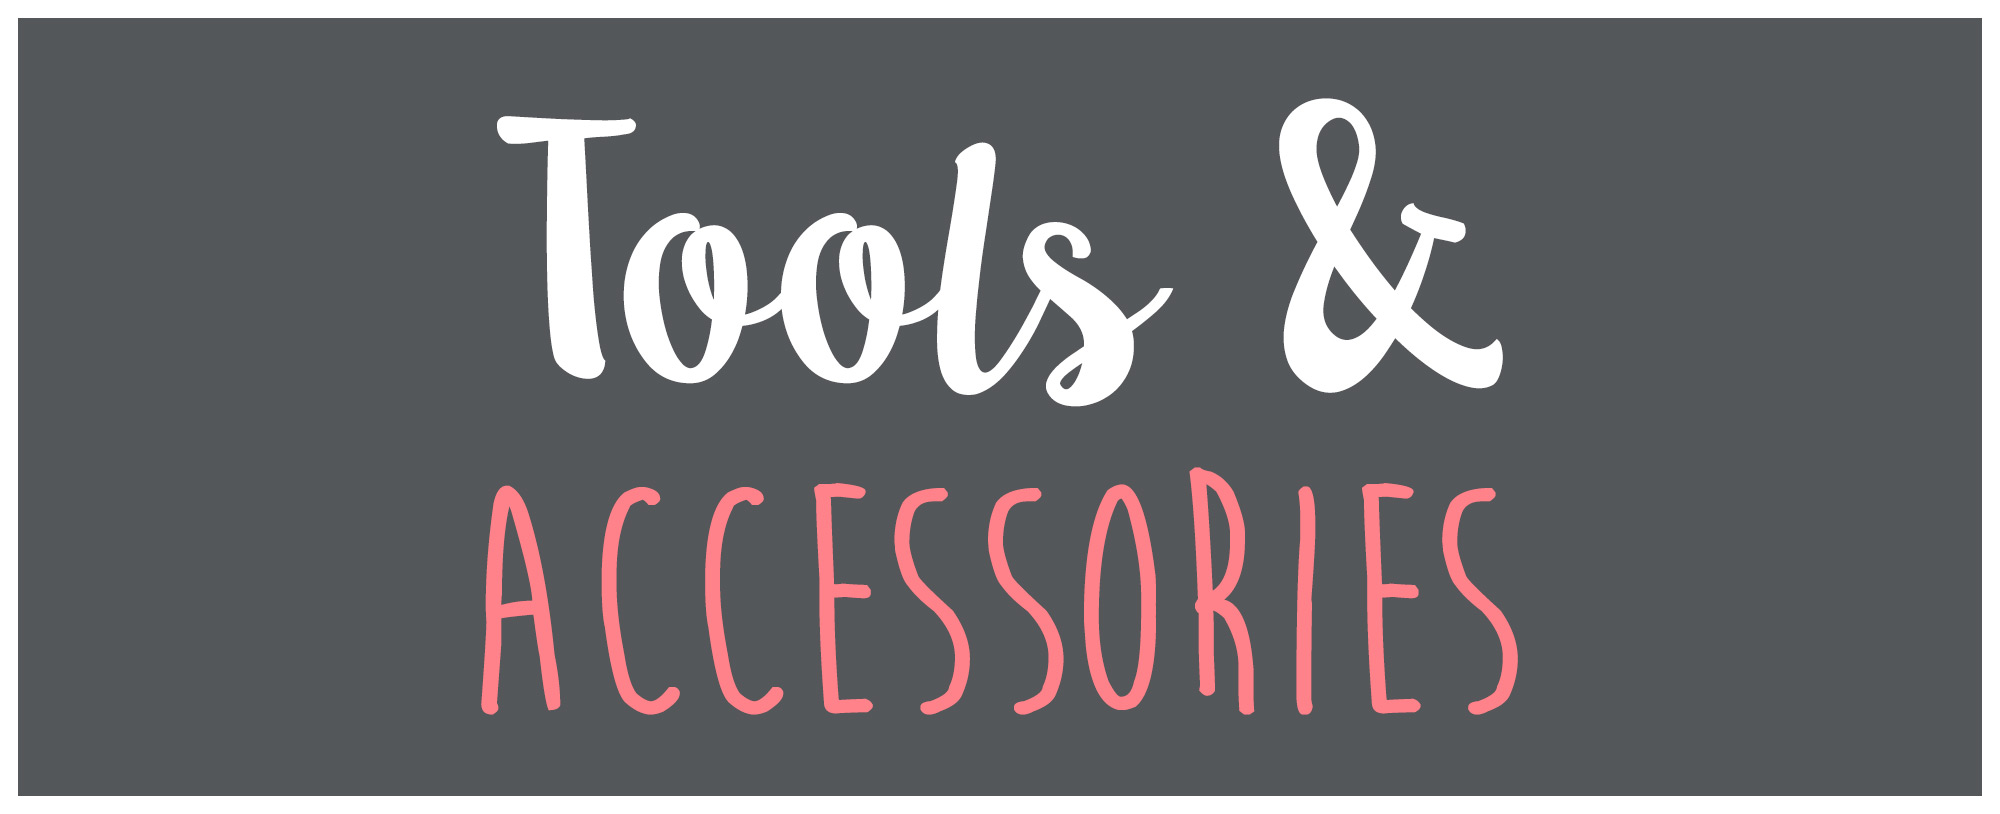 Sizzix Die Cutting Tools and Accessories